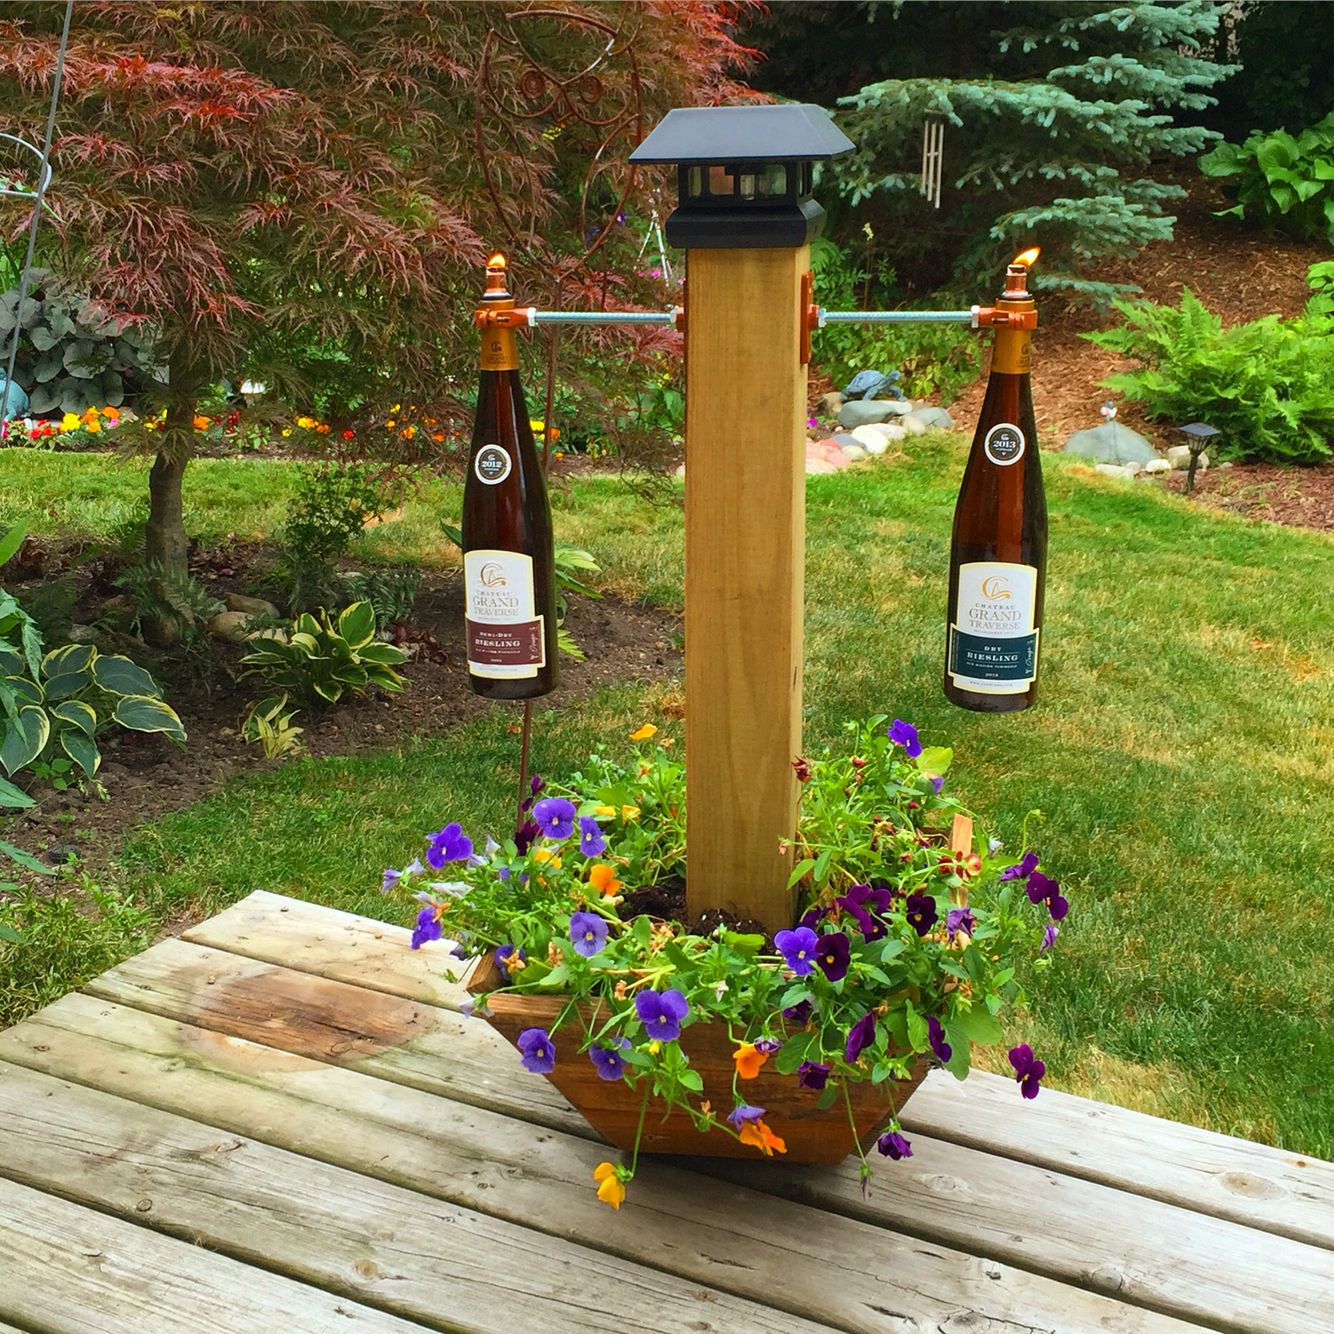 The Best Garden Ideas And Diy Yard Projects: Dual Tiki Torch Holder With A Solar Light On Top And